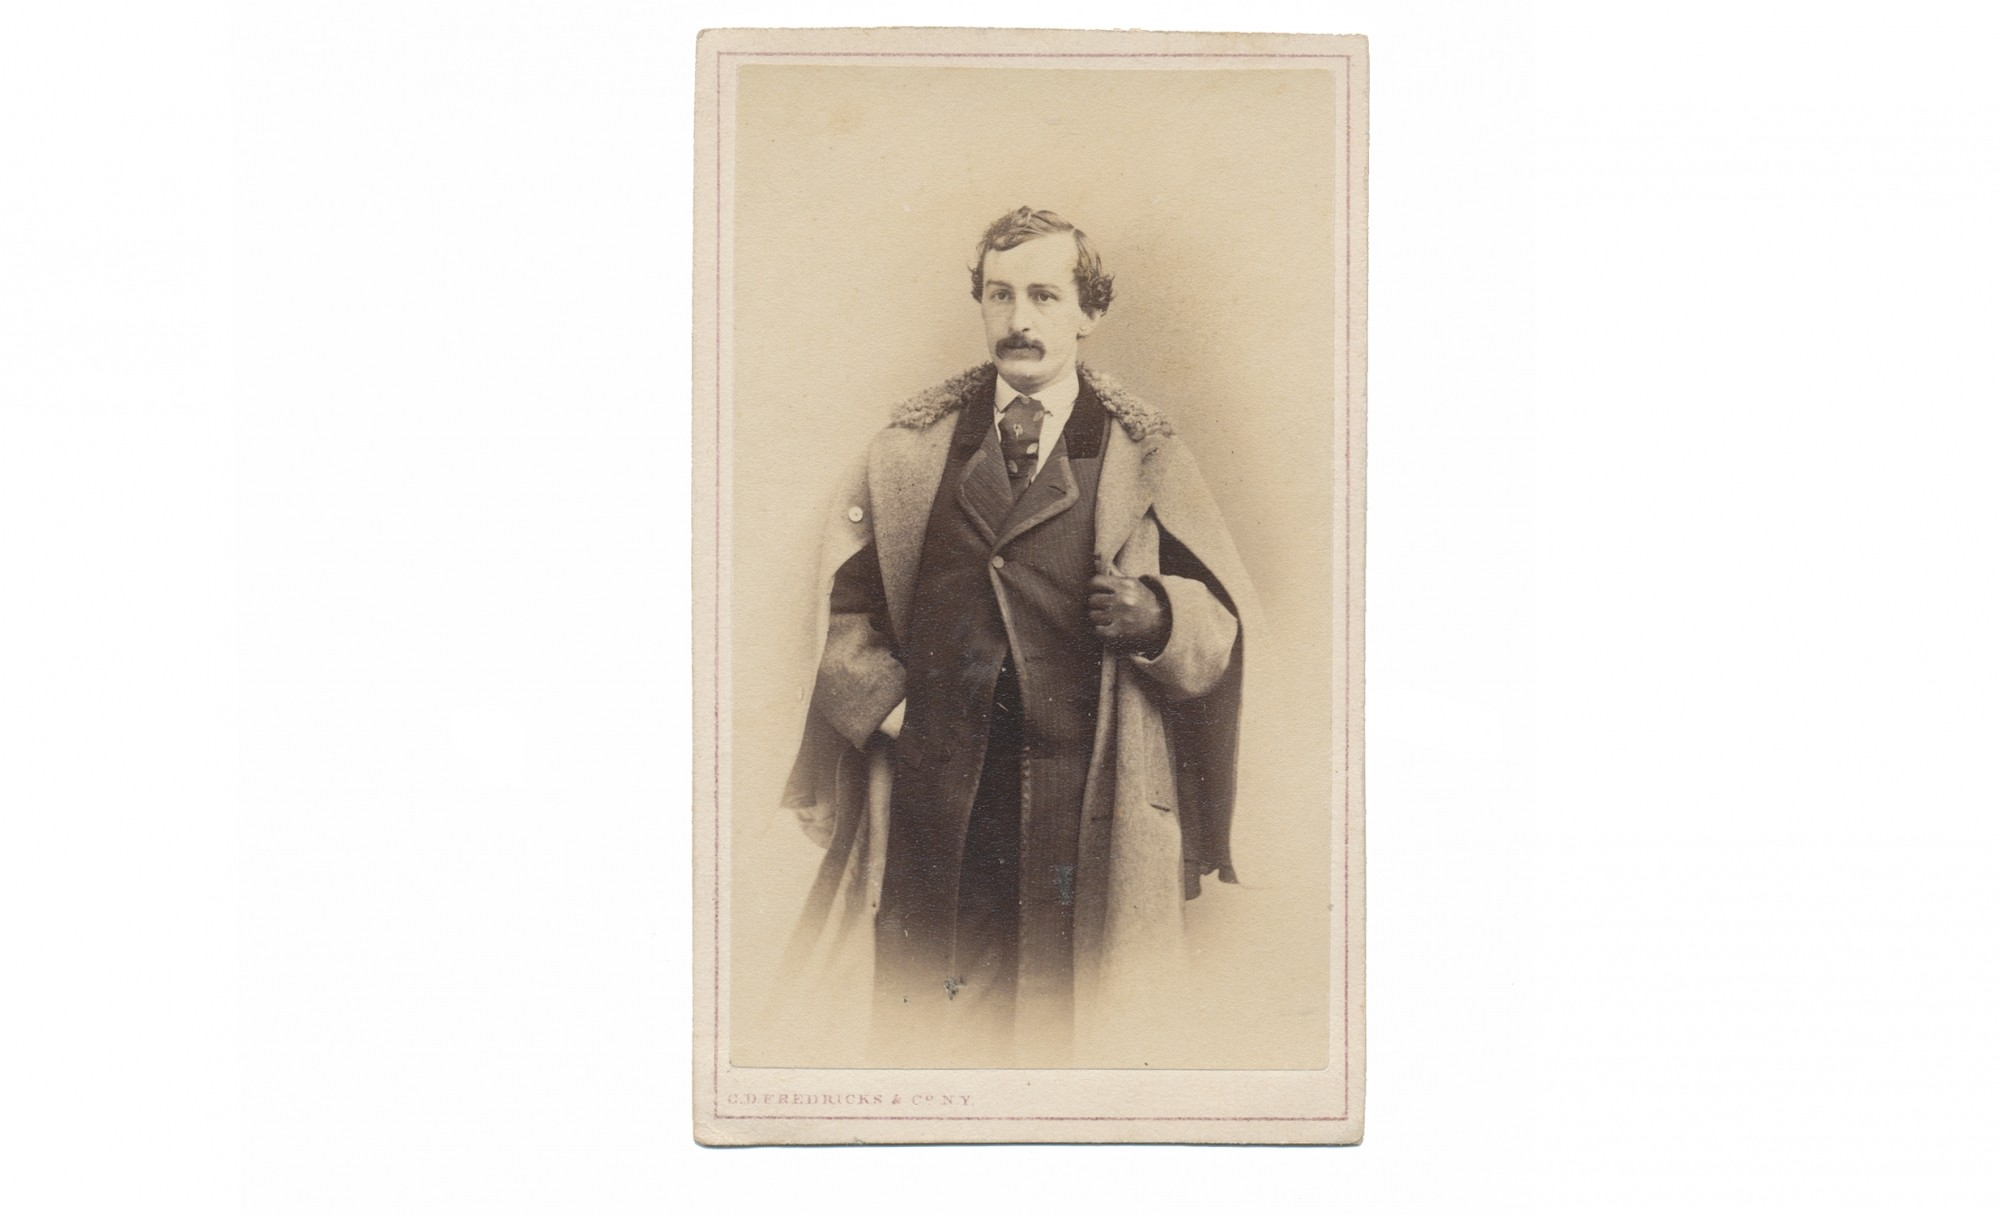 CDV OF JOHN WILKES BOOTH BY FREDERICKS OF NEW YORK